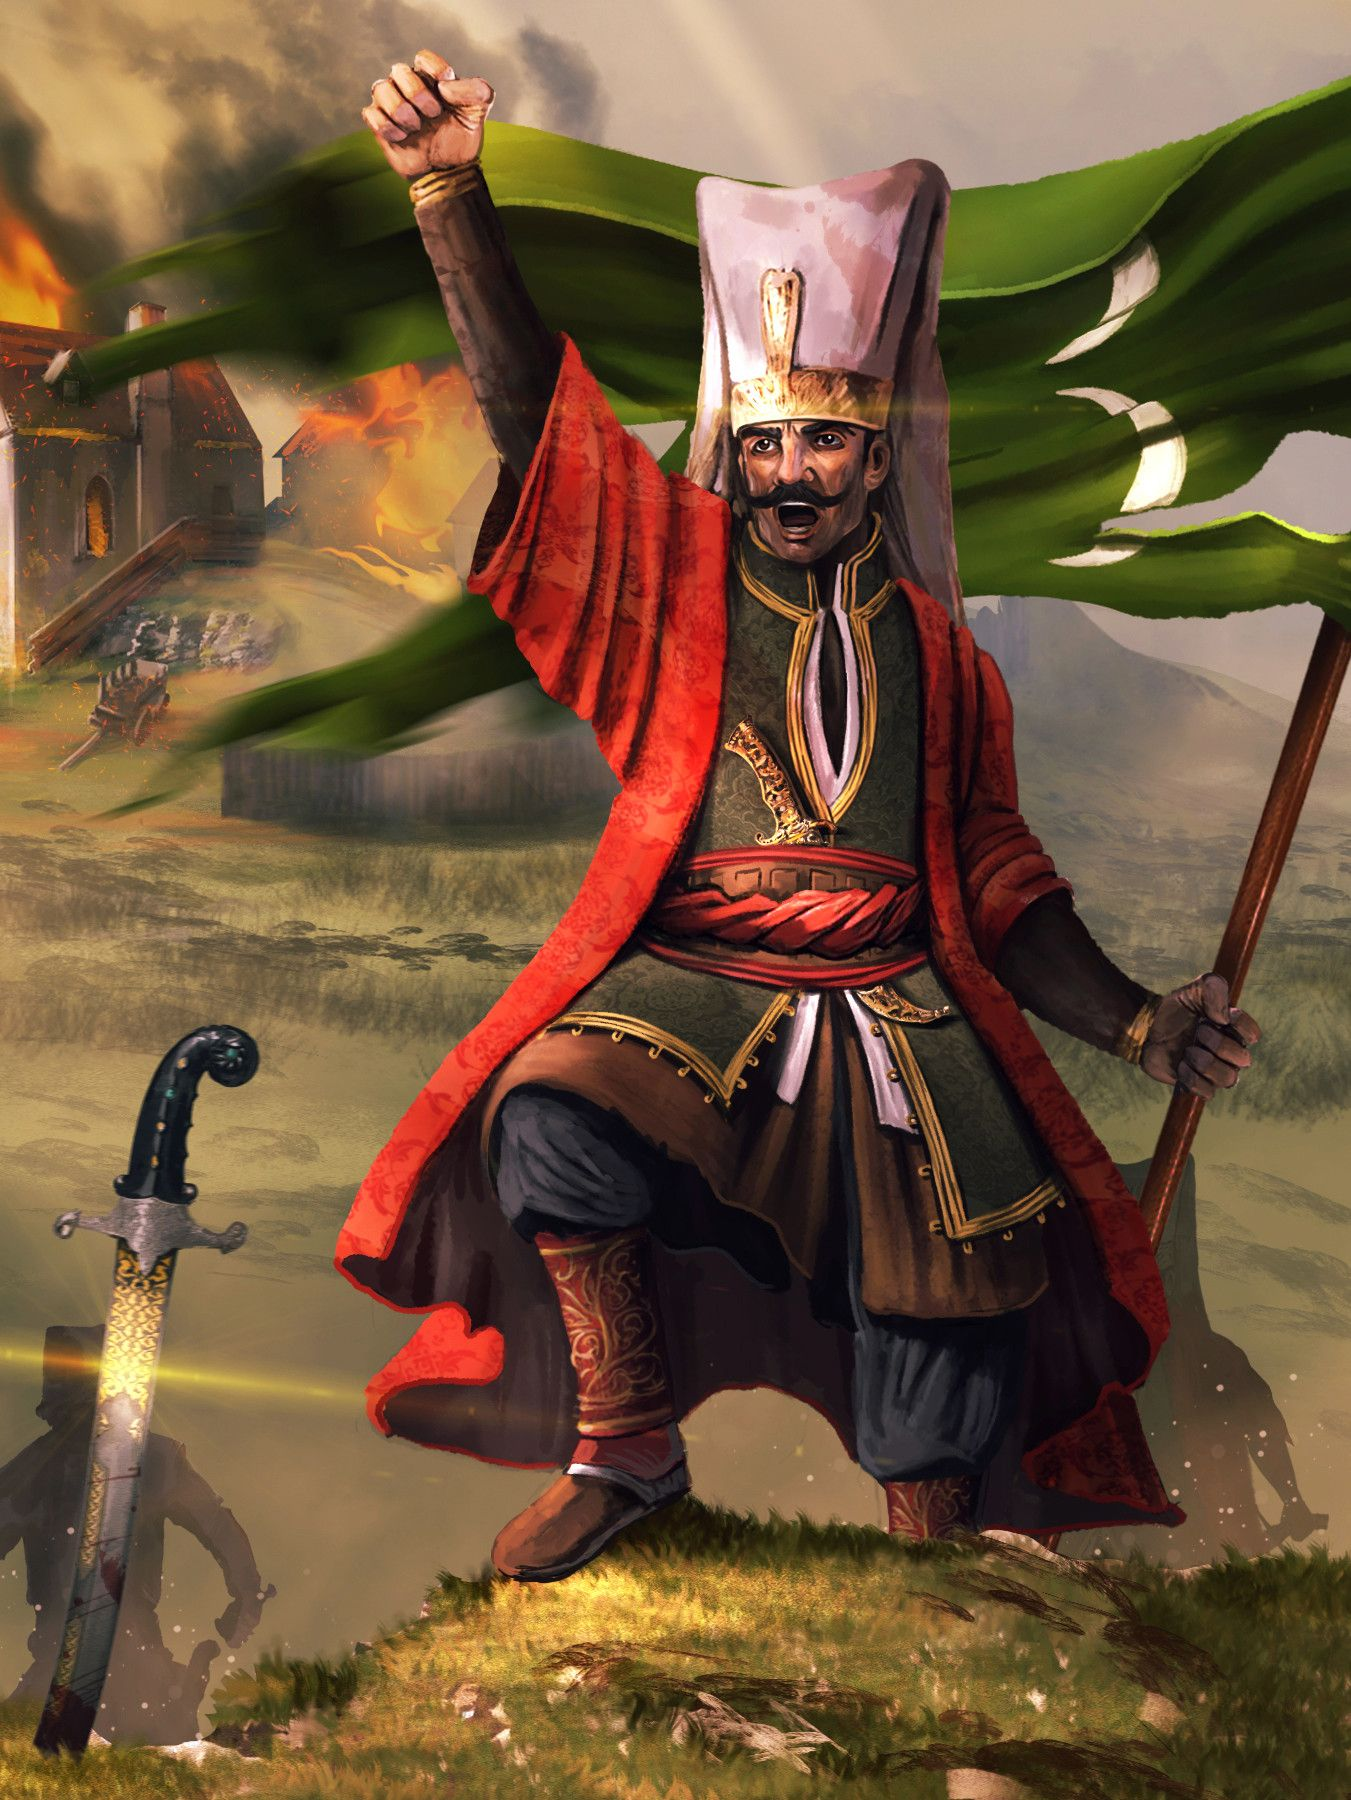 Turkish Janissary bannerman | Savaşçılar, Ortaçağ, AskeriOttoman Empire Janissaries